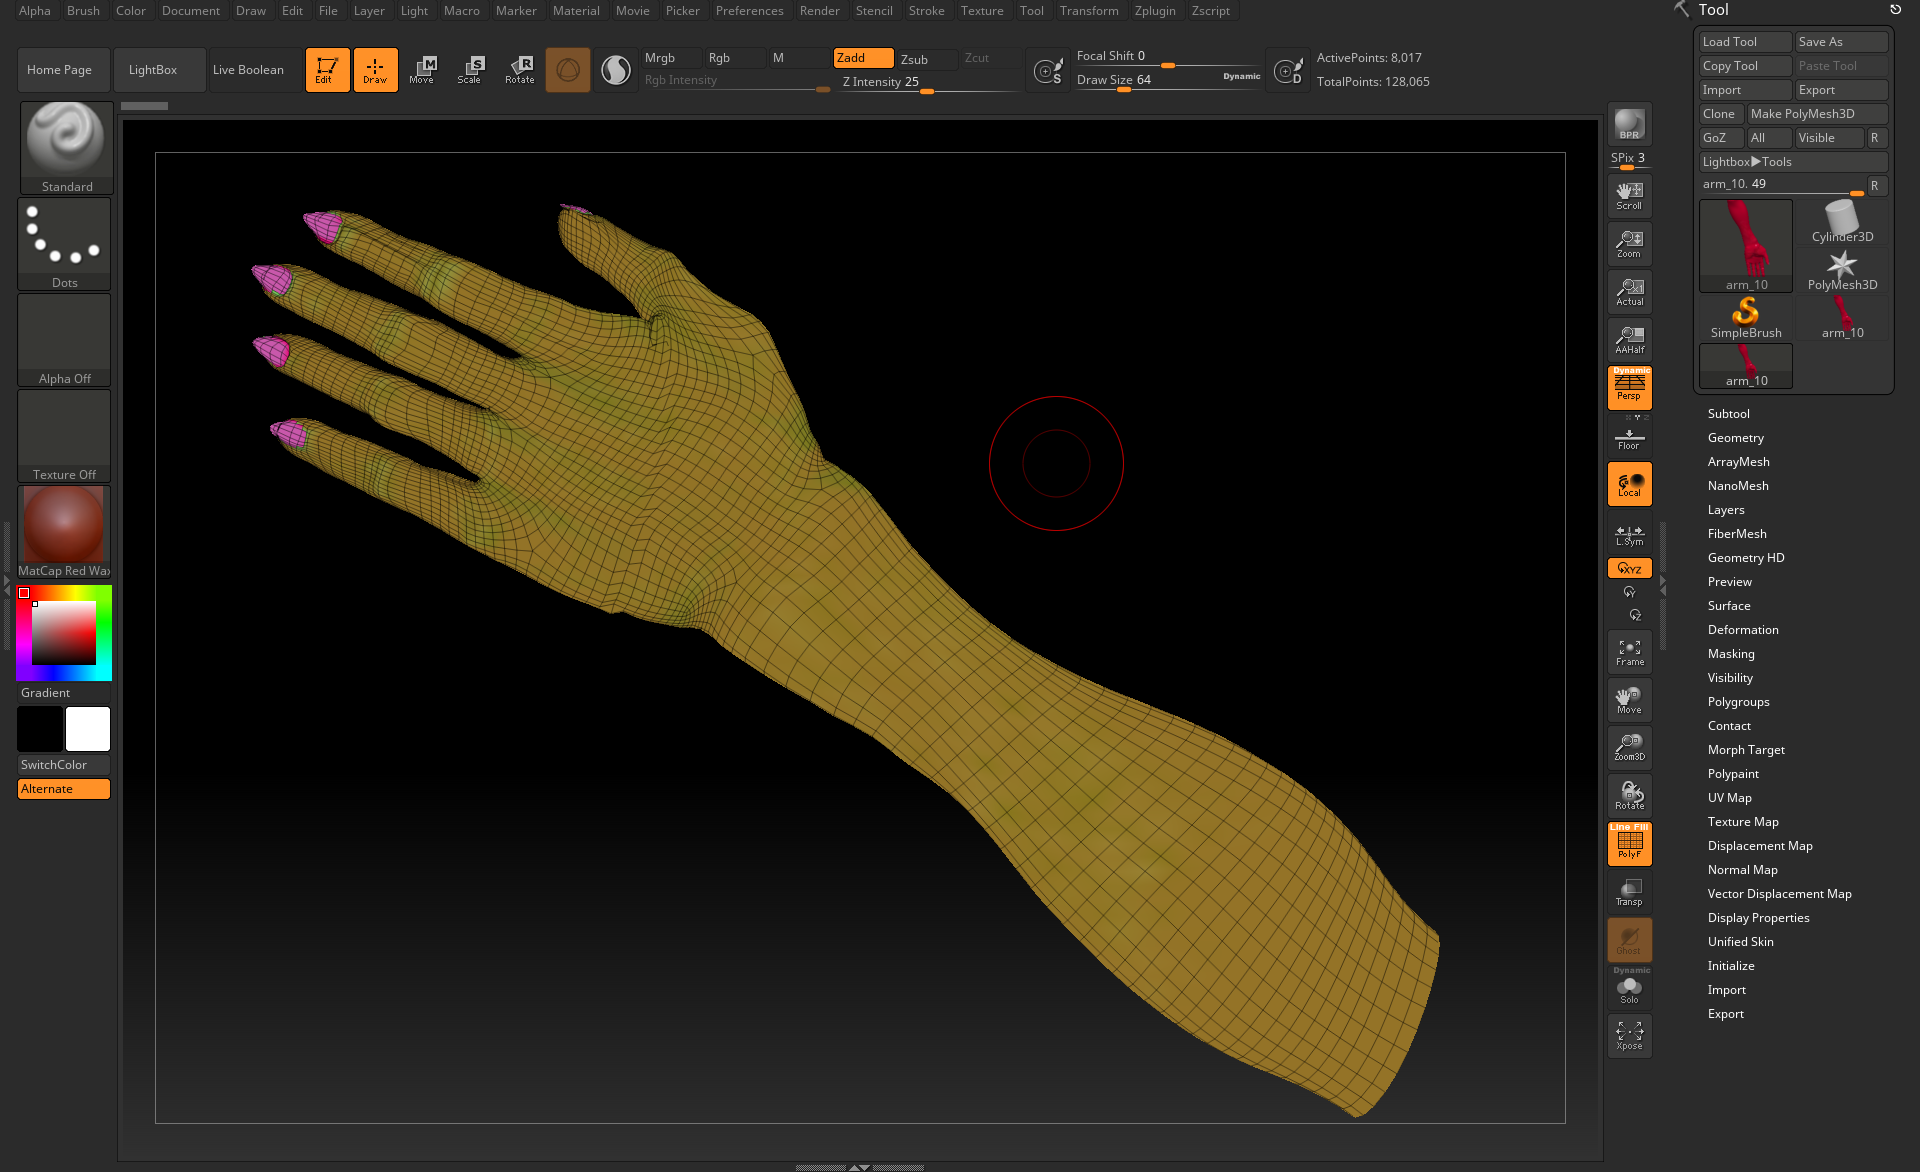 arm_zbrush_02.png